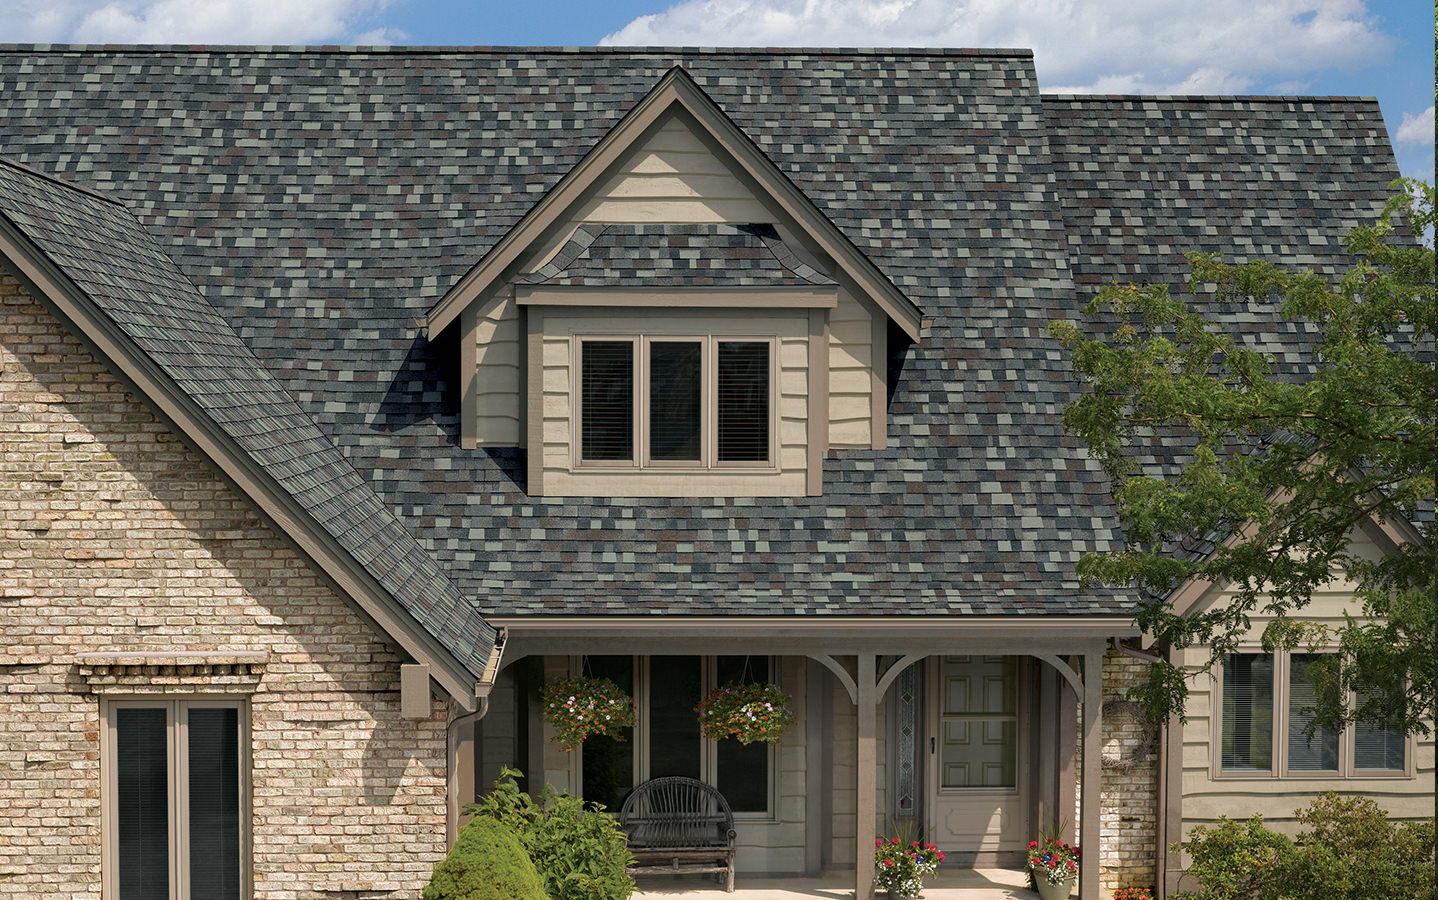 Our Favorite Shingles Win 2019 Women's Choice Award®